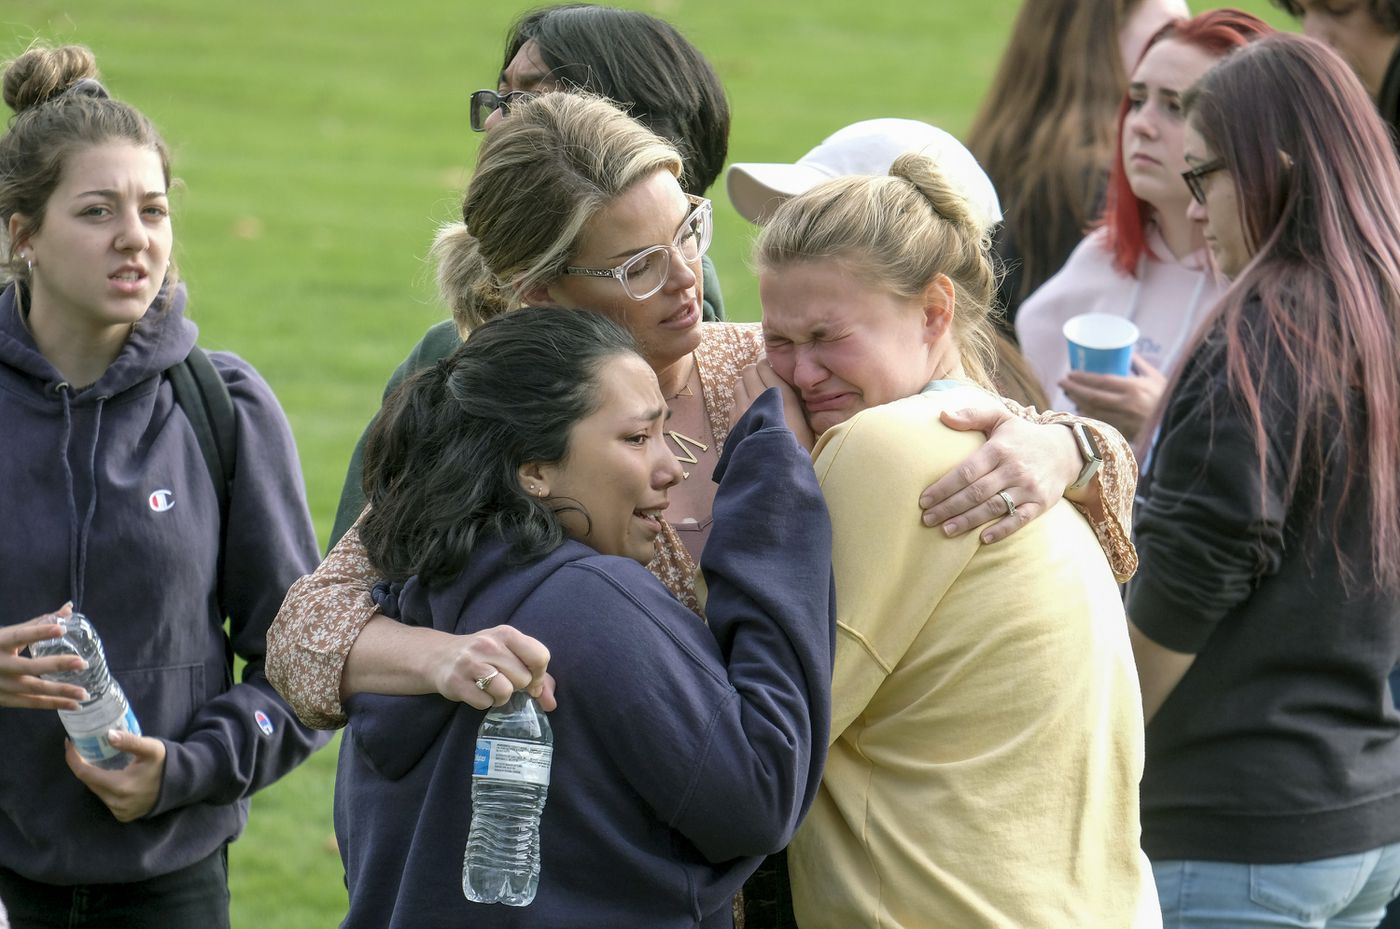 2 killed in Southern California school shooting; suspect in grave condition